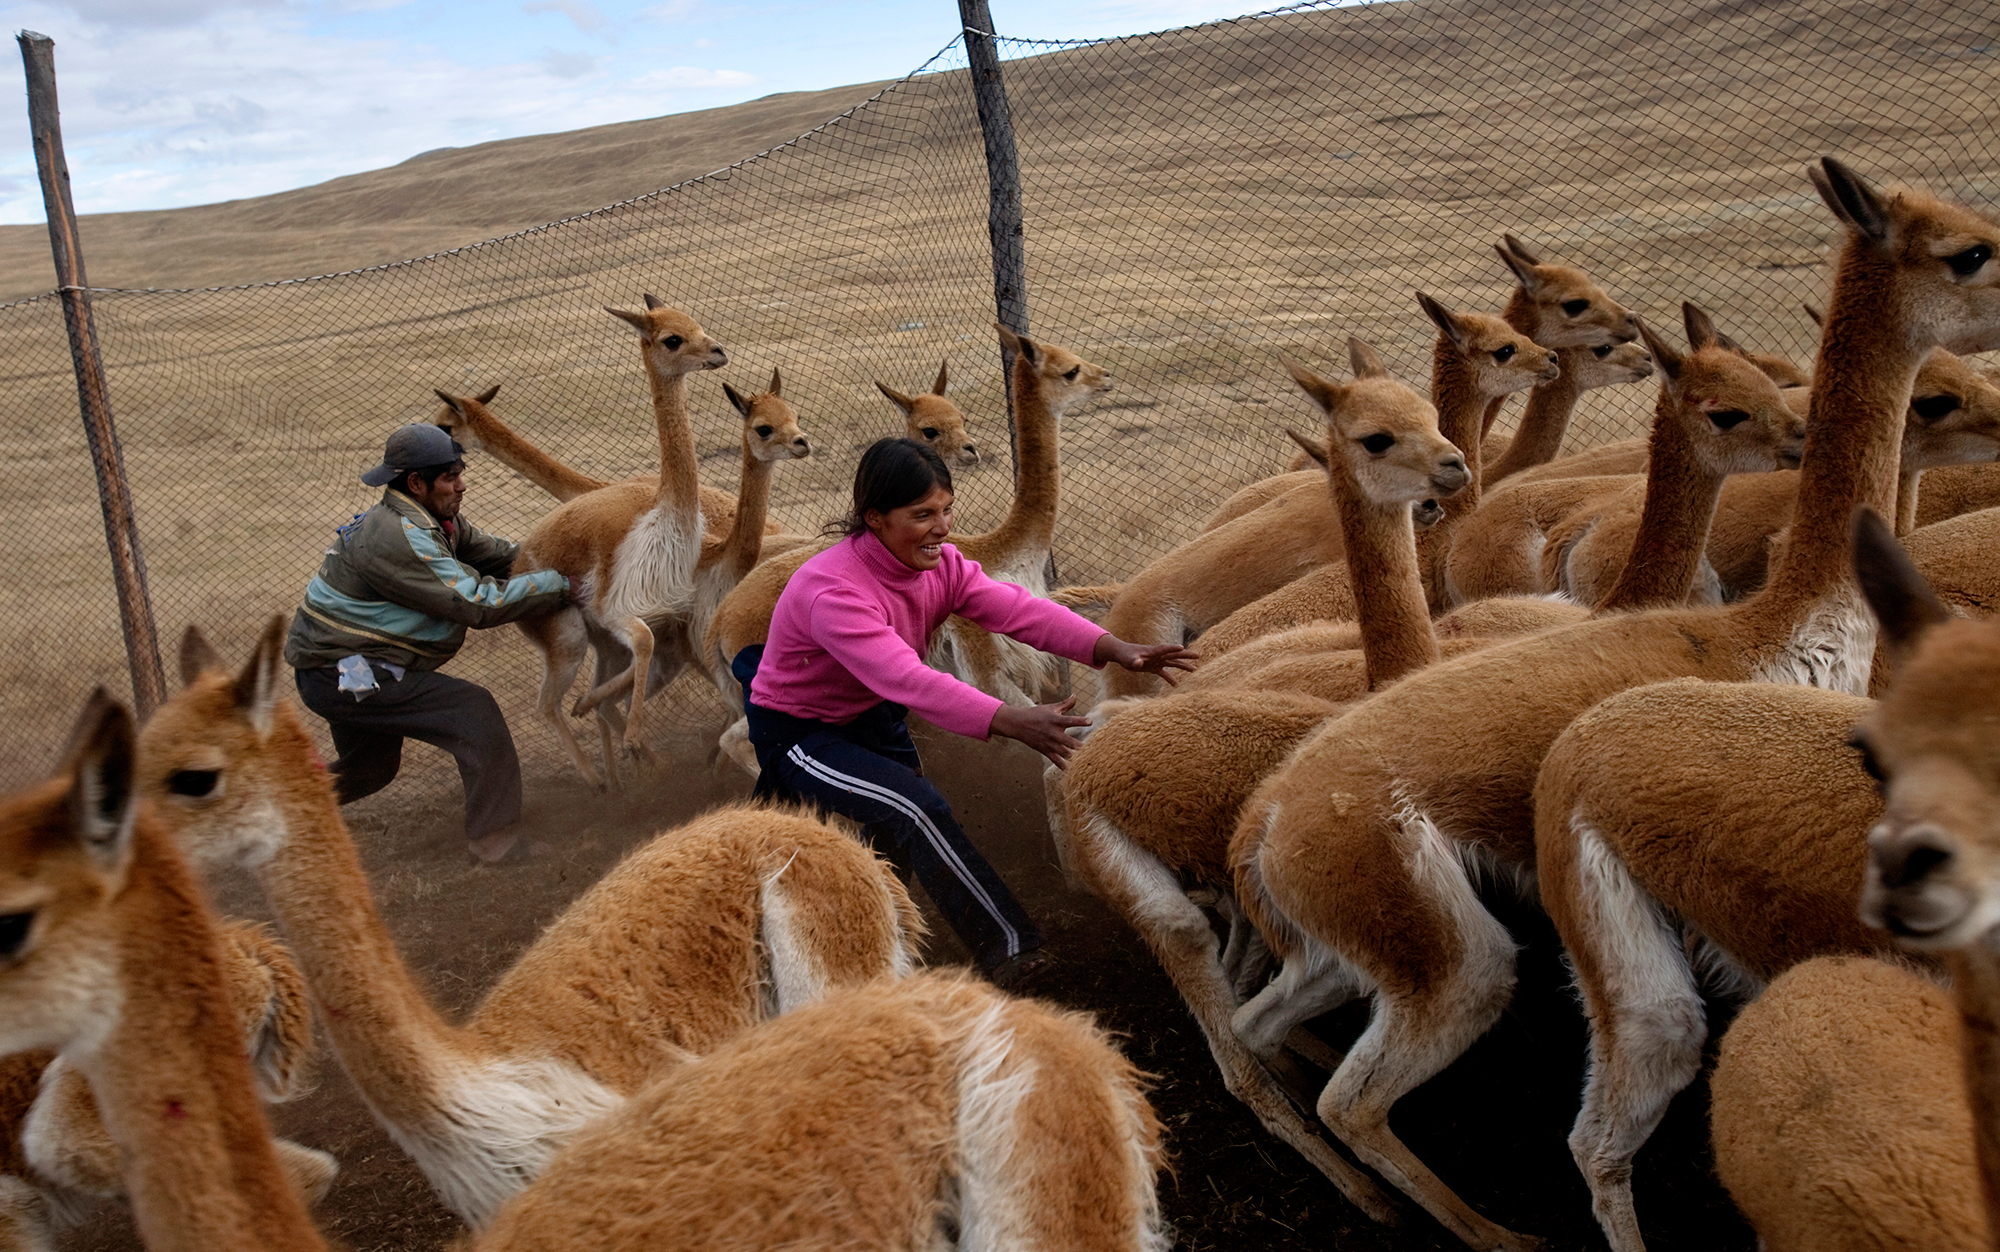 In the Peruvian Andes. Photo by Karla Gachet/Panos.